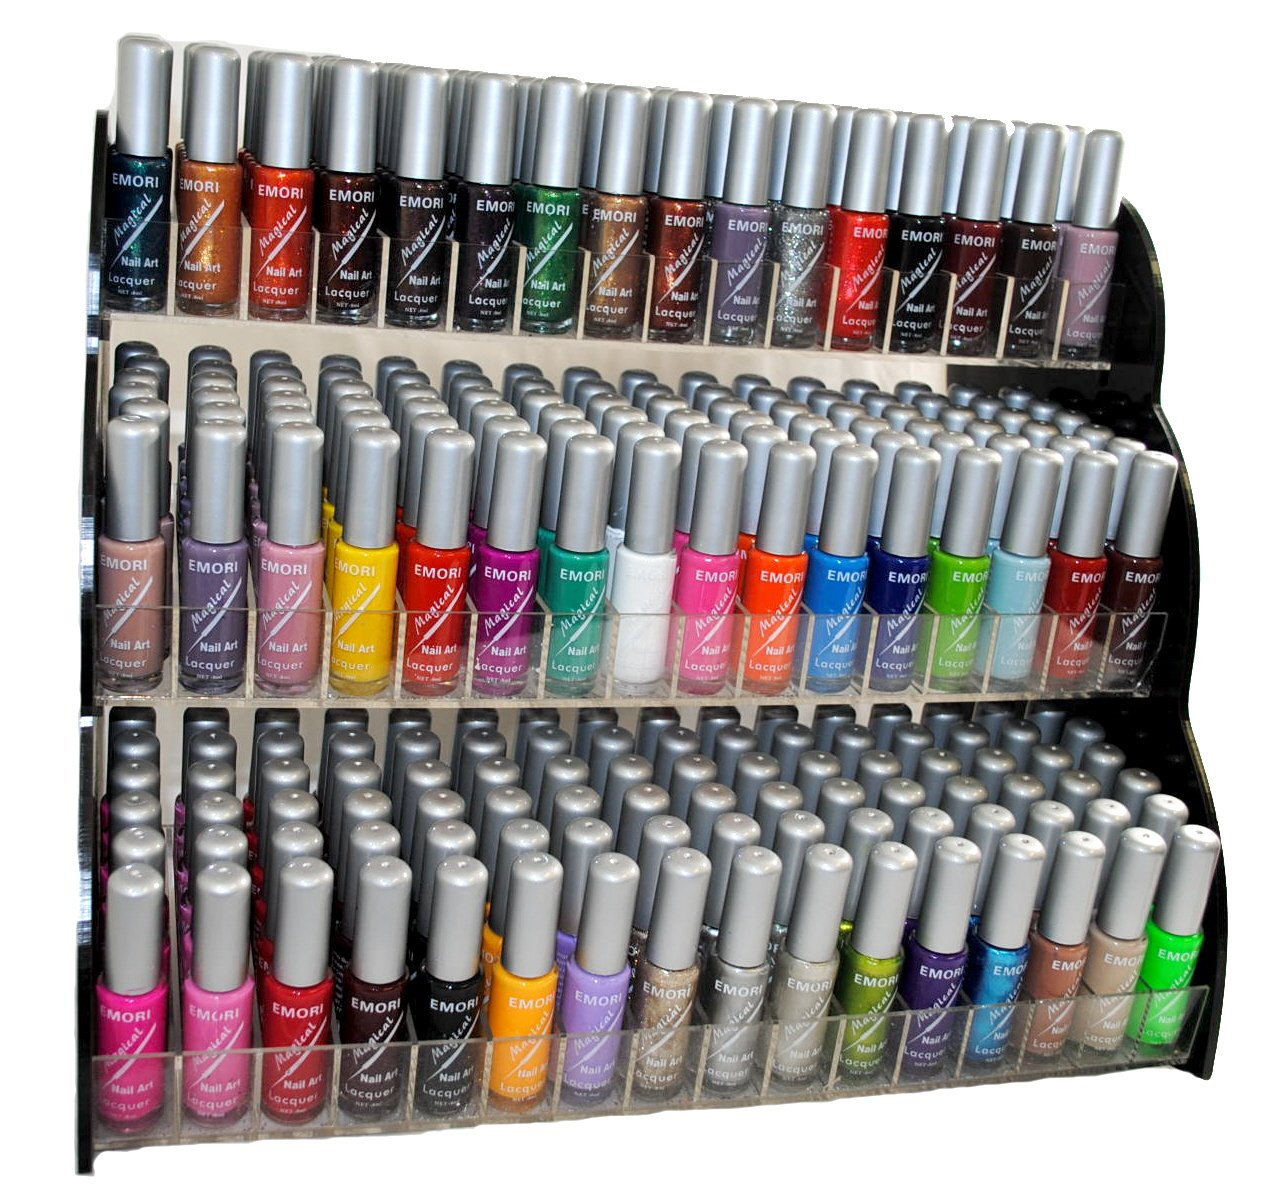 Amazon.com: Emori (TM) All About Nail 50 Piece Color Nail Lacquer ...